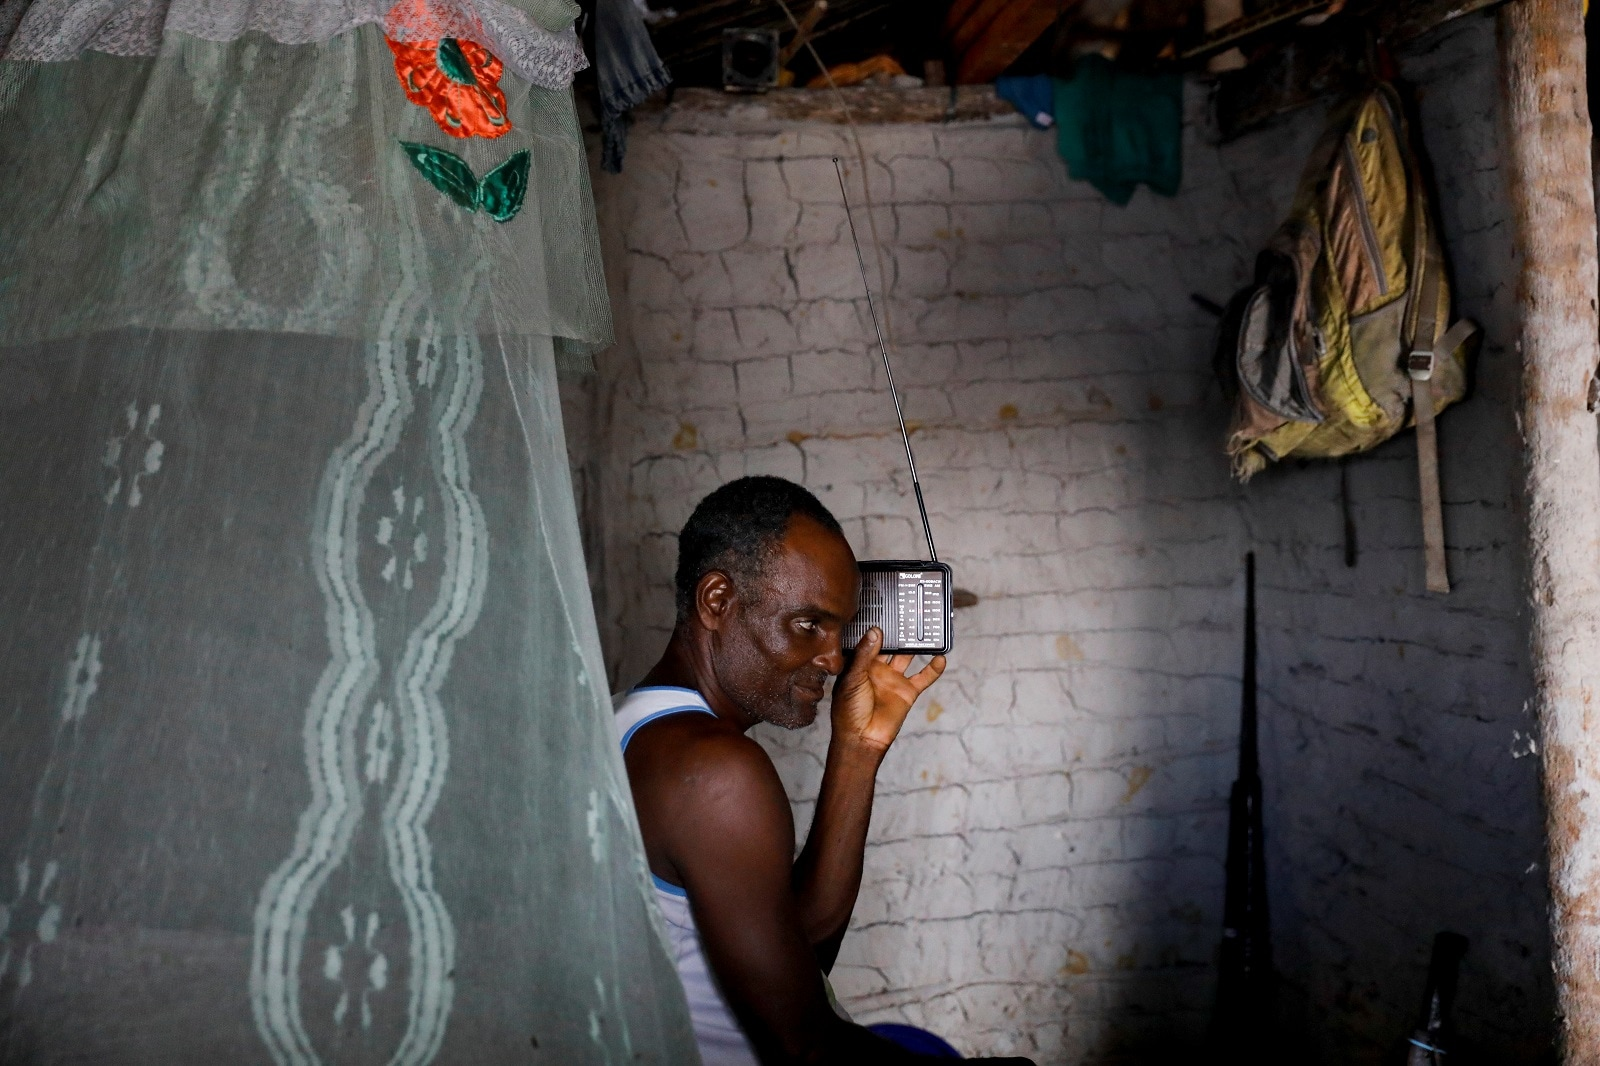 Fisherman Jose da Cruz listens to the radio inside his house, in Cairu, state of Bahia, Brazil, April 5, 2019. REUTERS/Nacho Doce